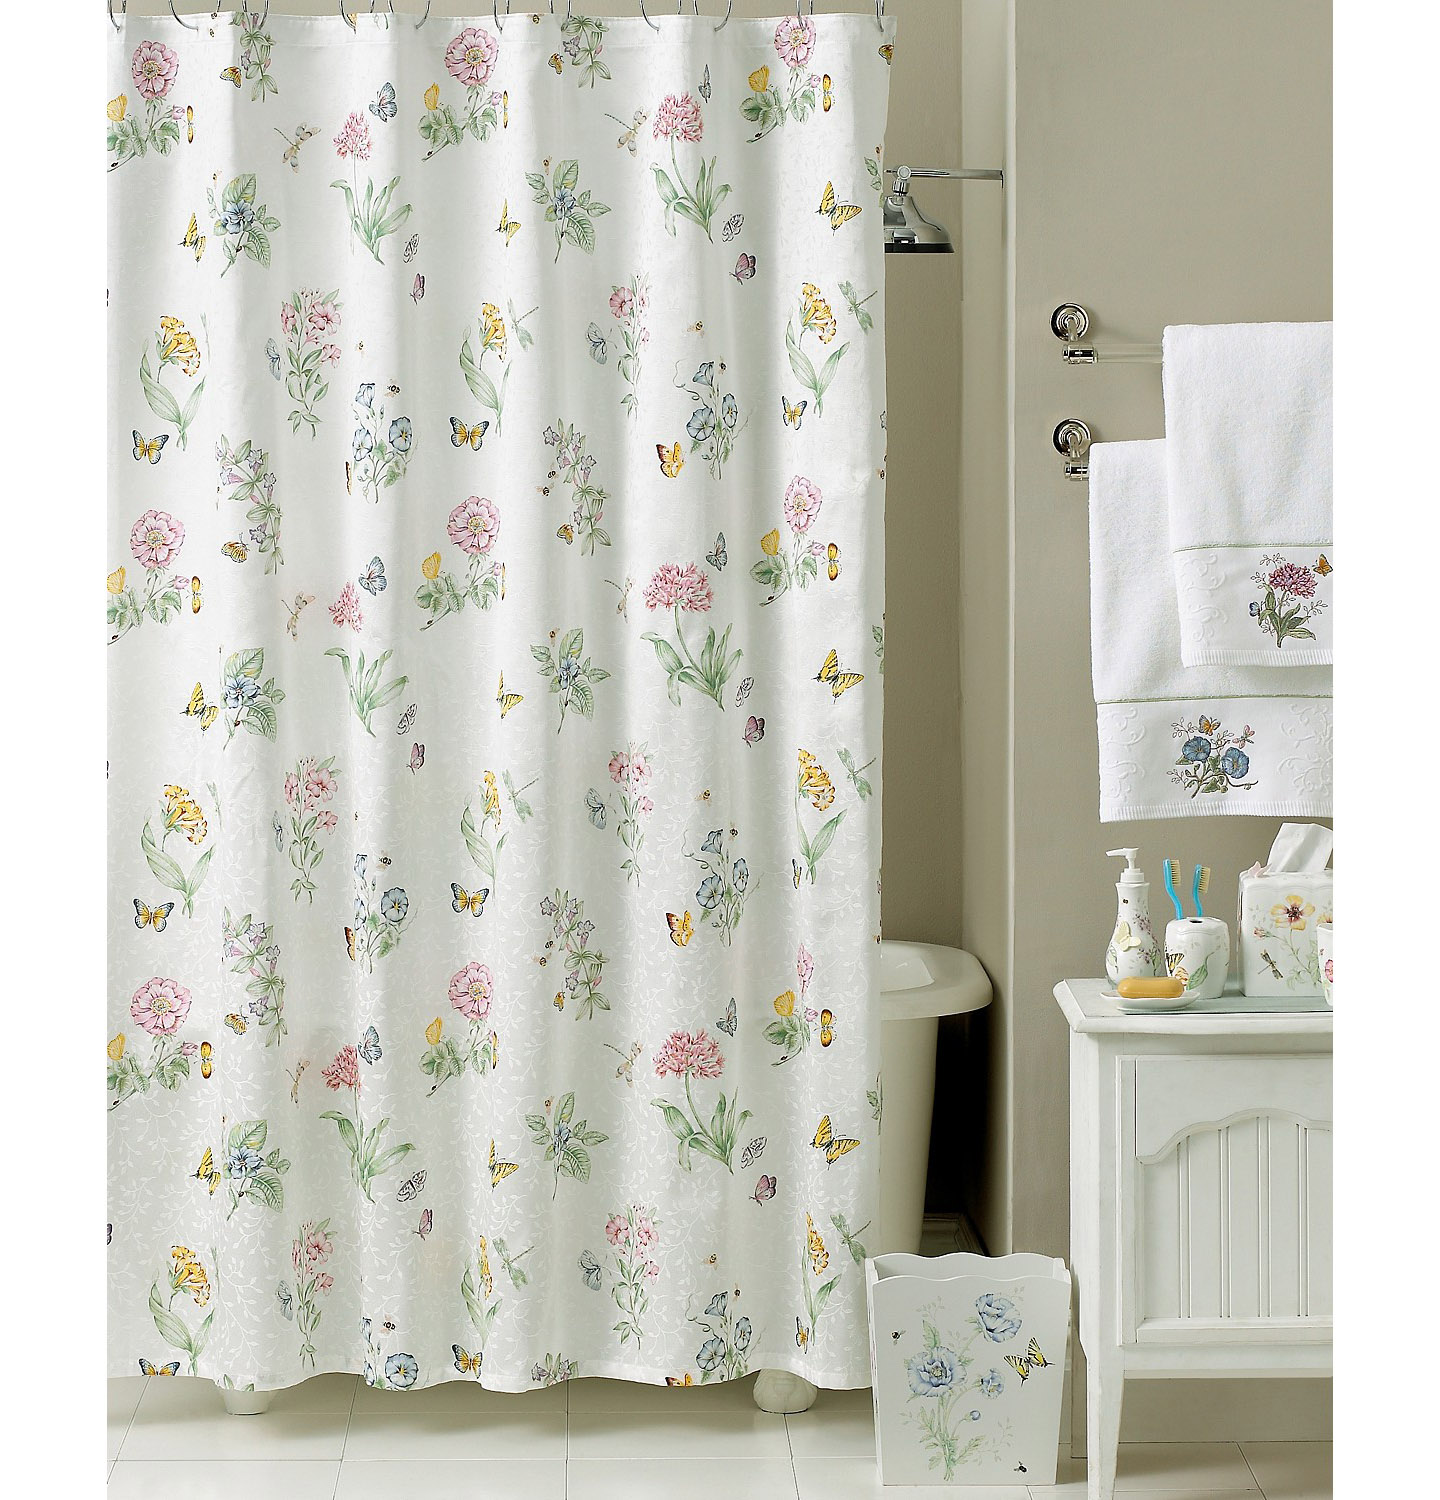 Lenox Butterfly Meadow Shower Curtain And Bath Accessories